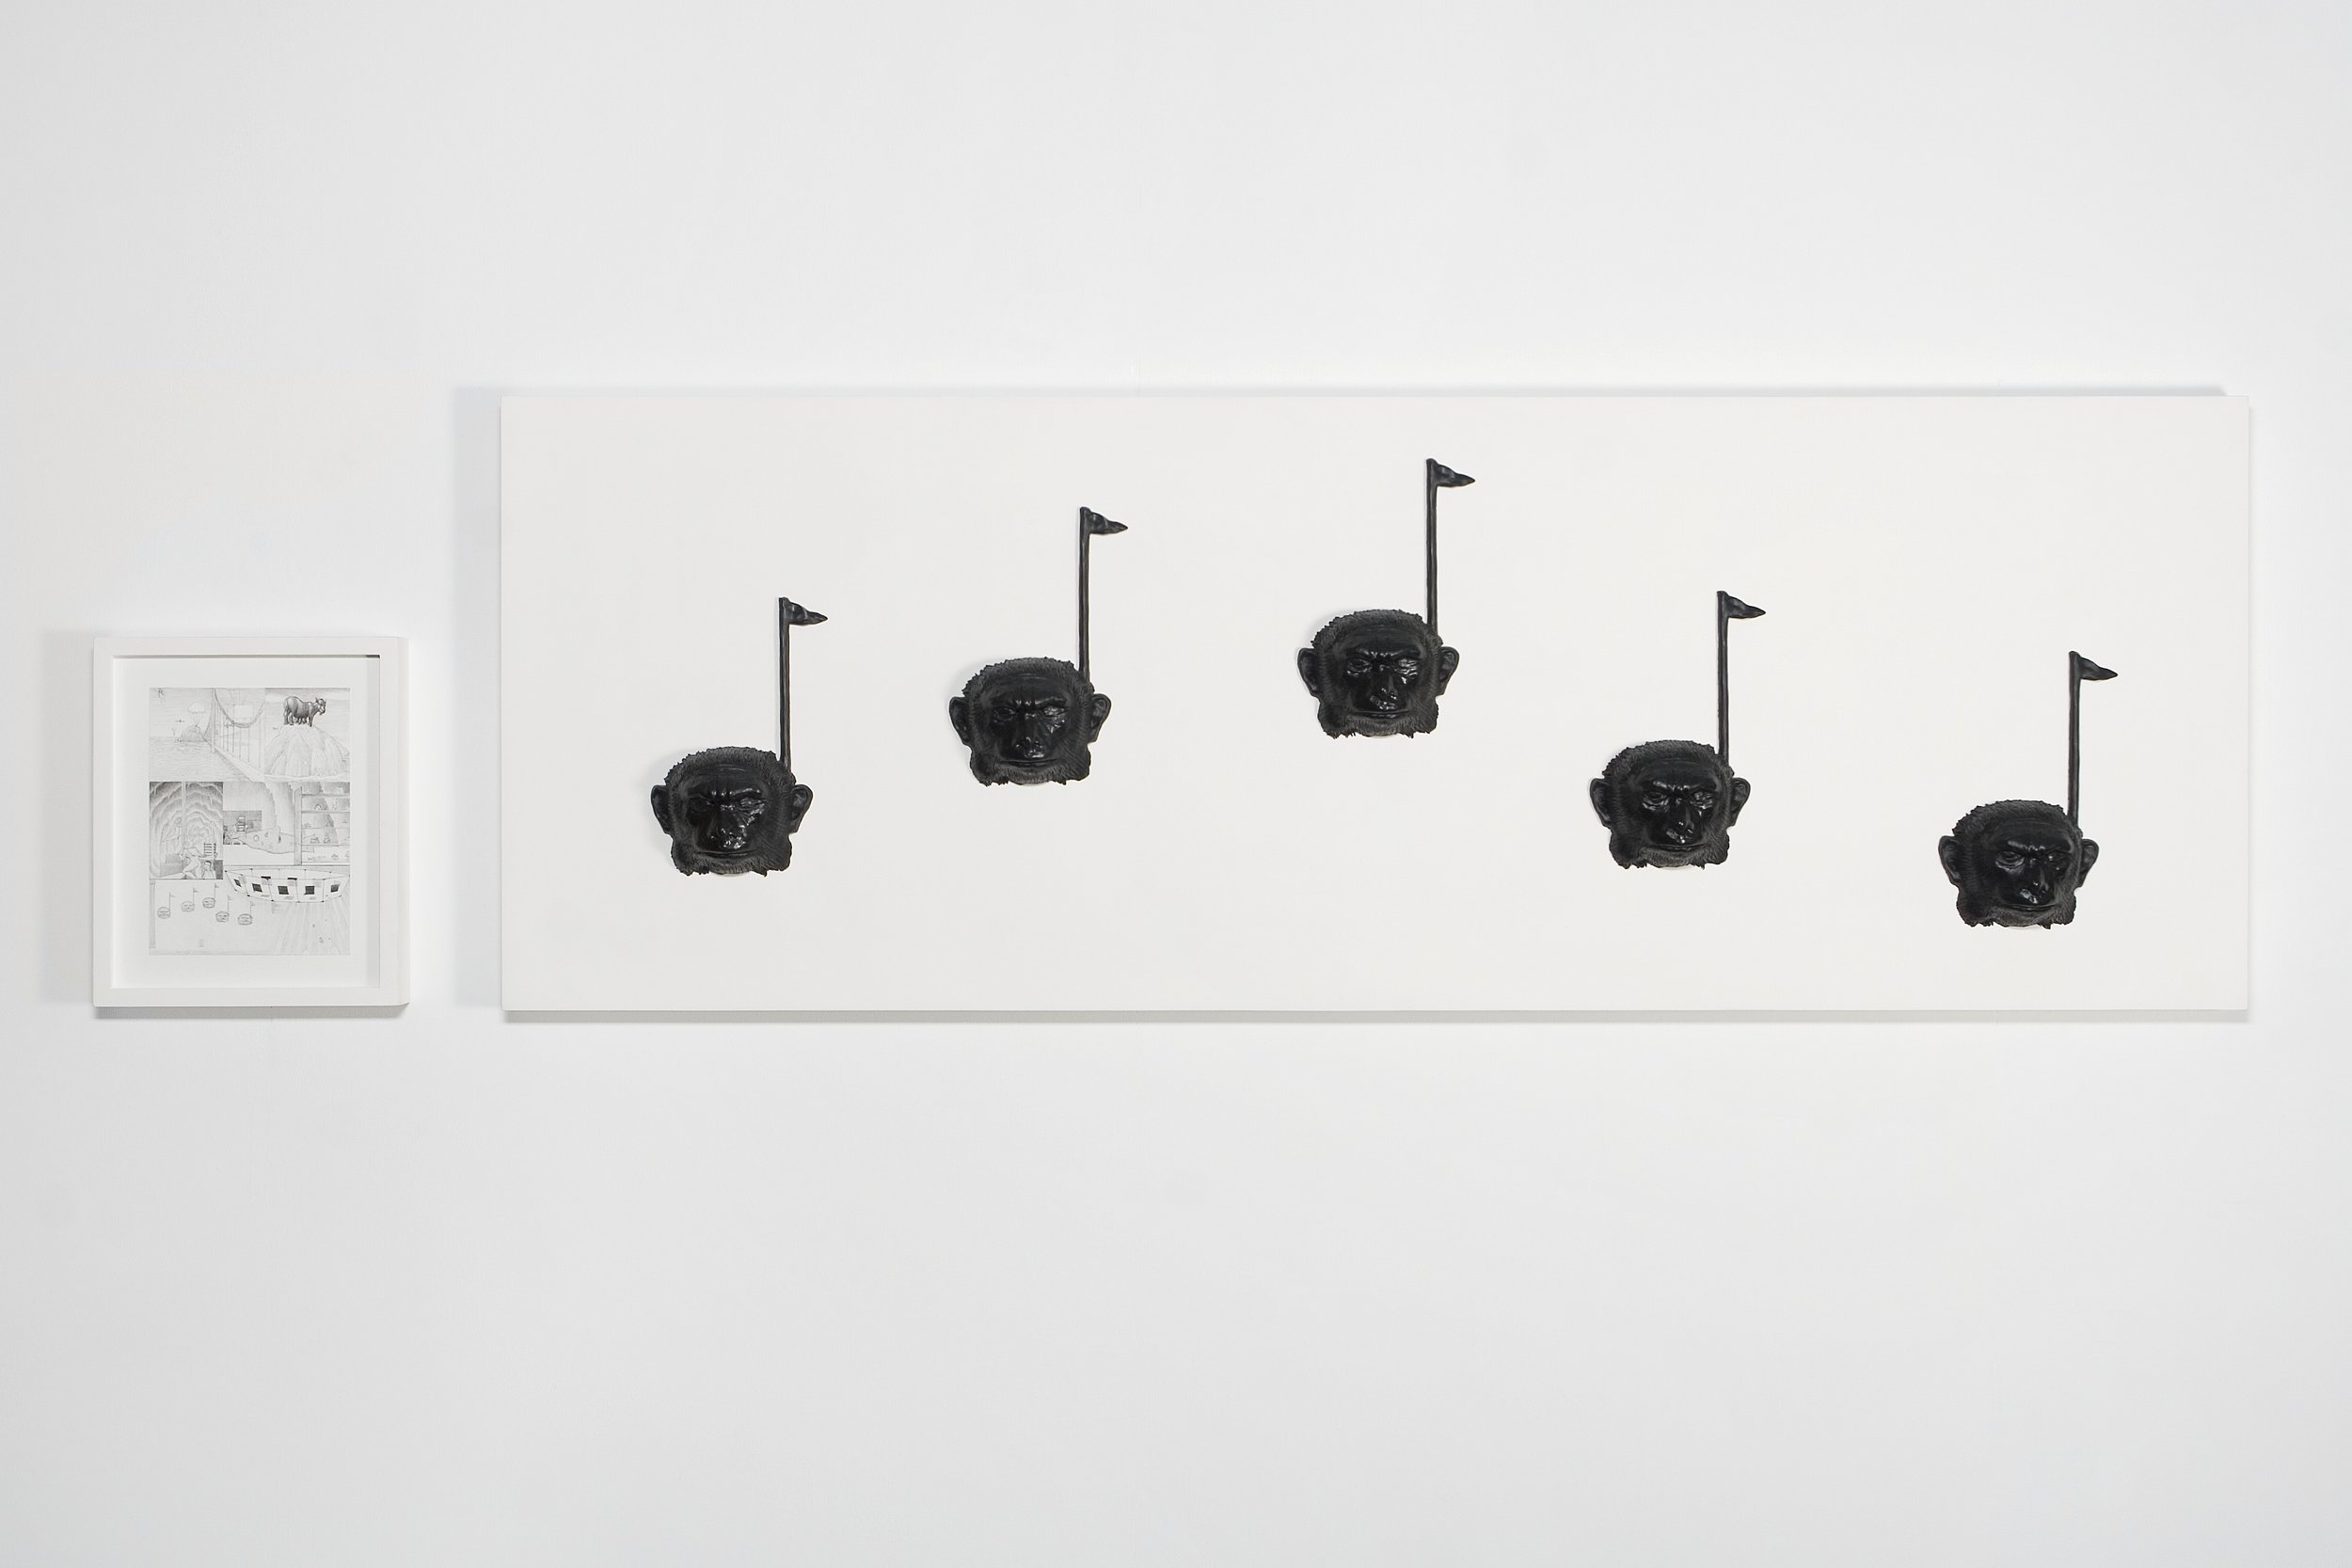 "Dream Object (""In a James Bond sequence... On the wall were decorative musical notes with monkey heads for dots...""), 2005 polyurethane 71 x 192,4 x 5,7 cm - 28 x 75 3/4 x 2 1/4 inches (framed)"